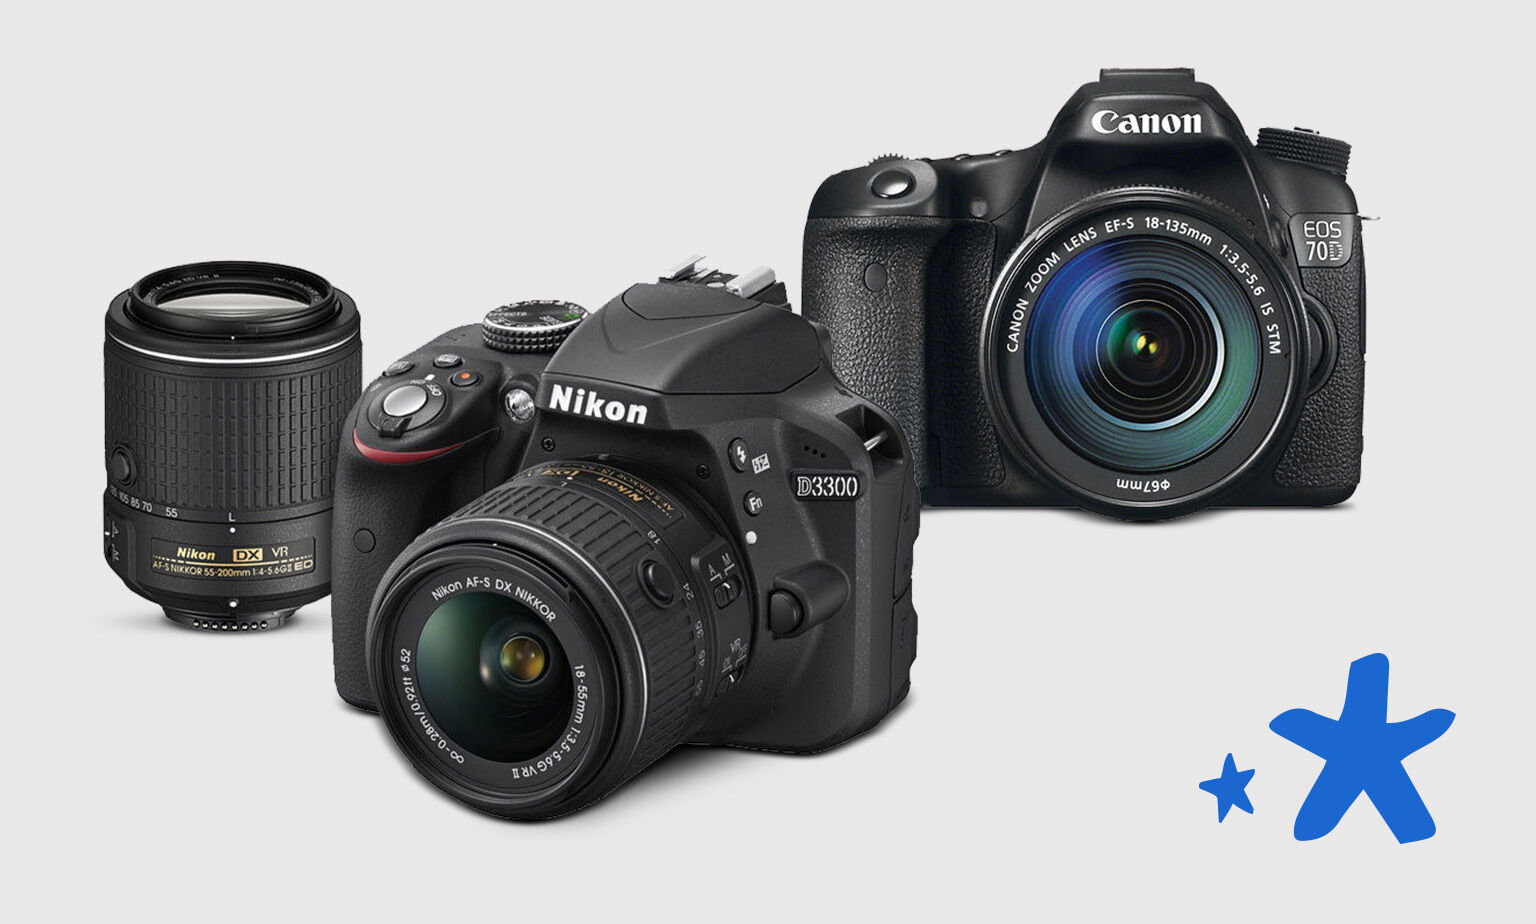 Entry Level Cameras from Canon, Nikon & More